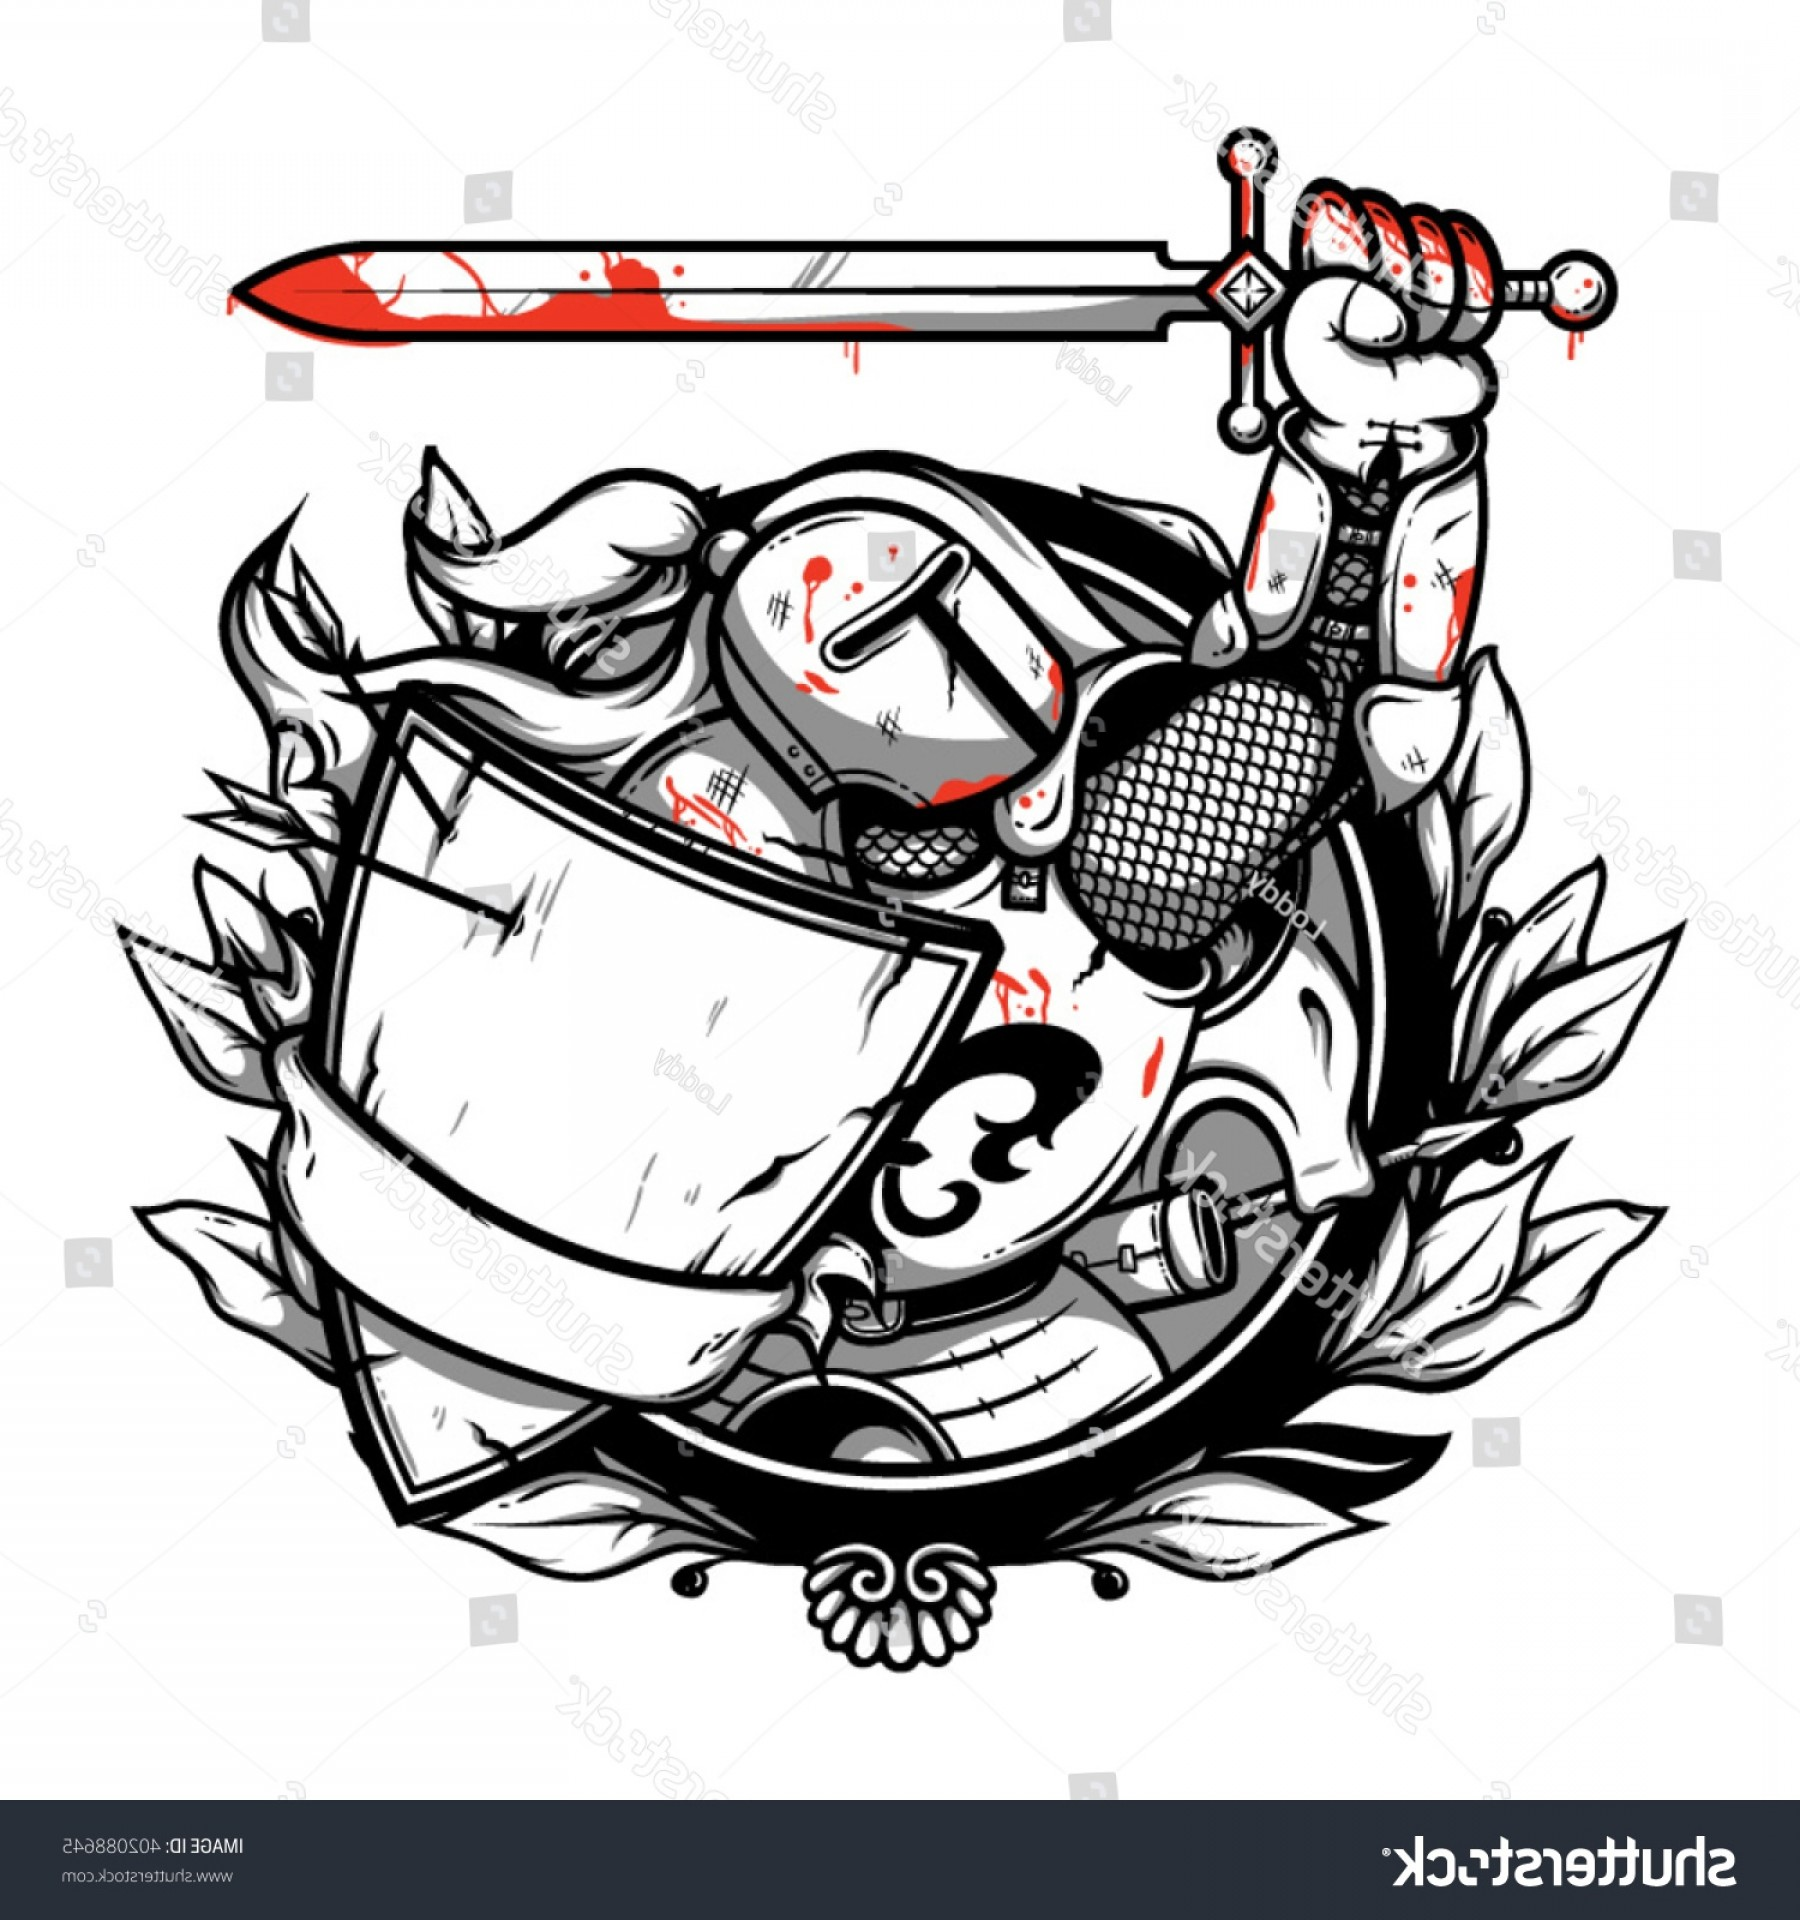 1800x1920 Knight Logo Ideas Awesome Knight With A Big Sword Stock Vector Art